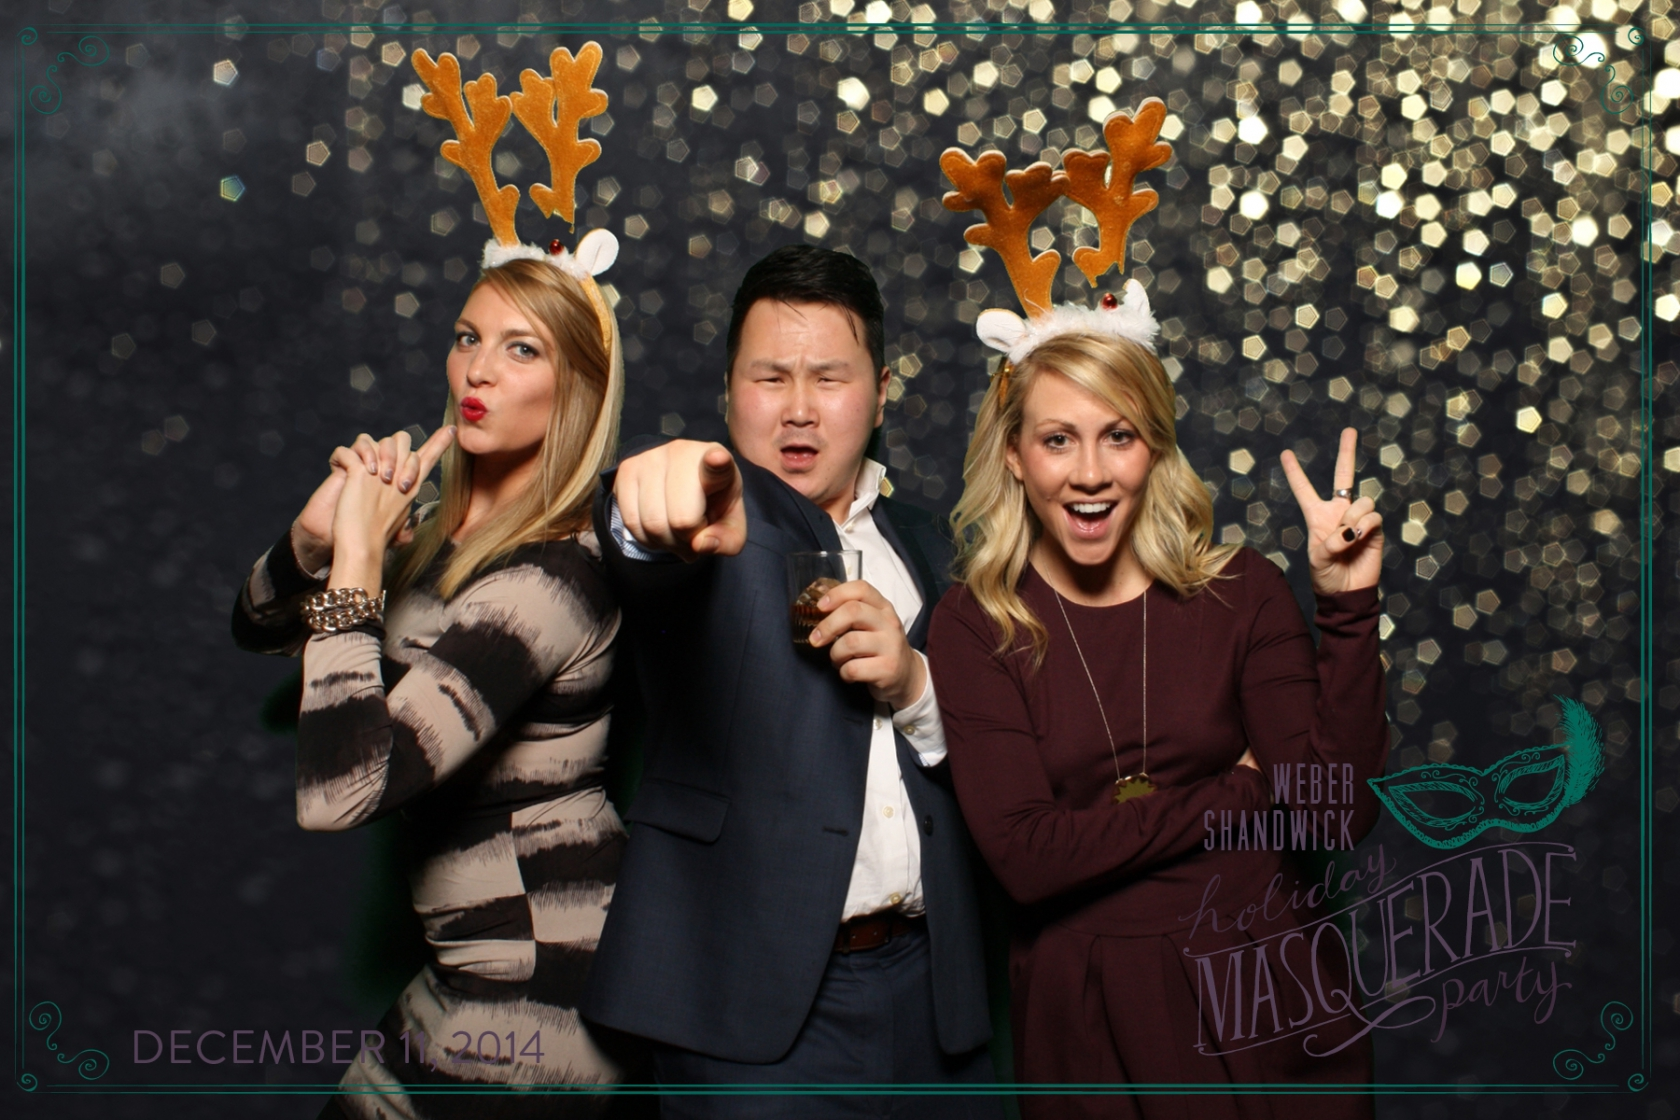 chicago holiday party photographer holiday event photography disco fabulous company holiday party photo booth